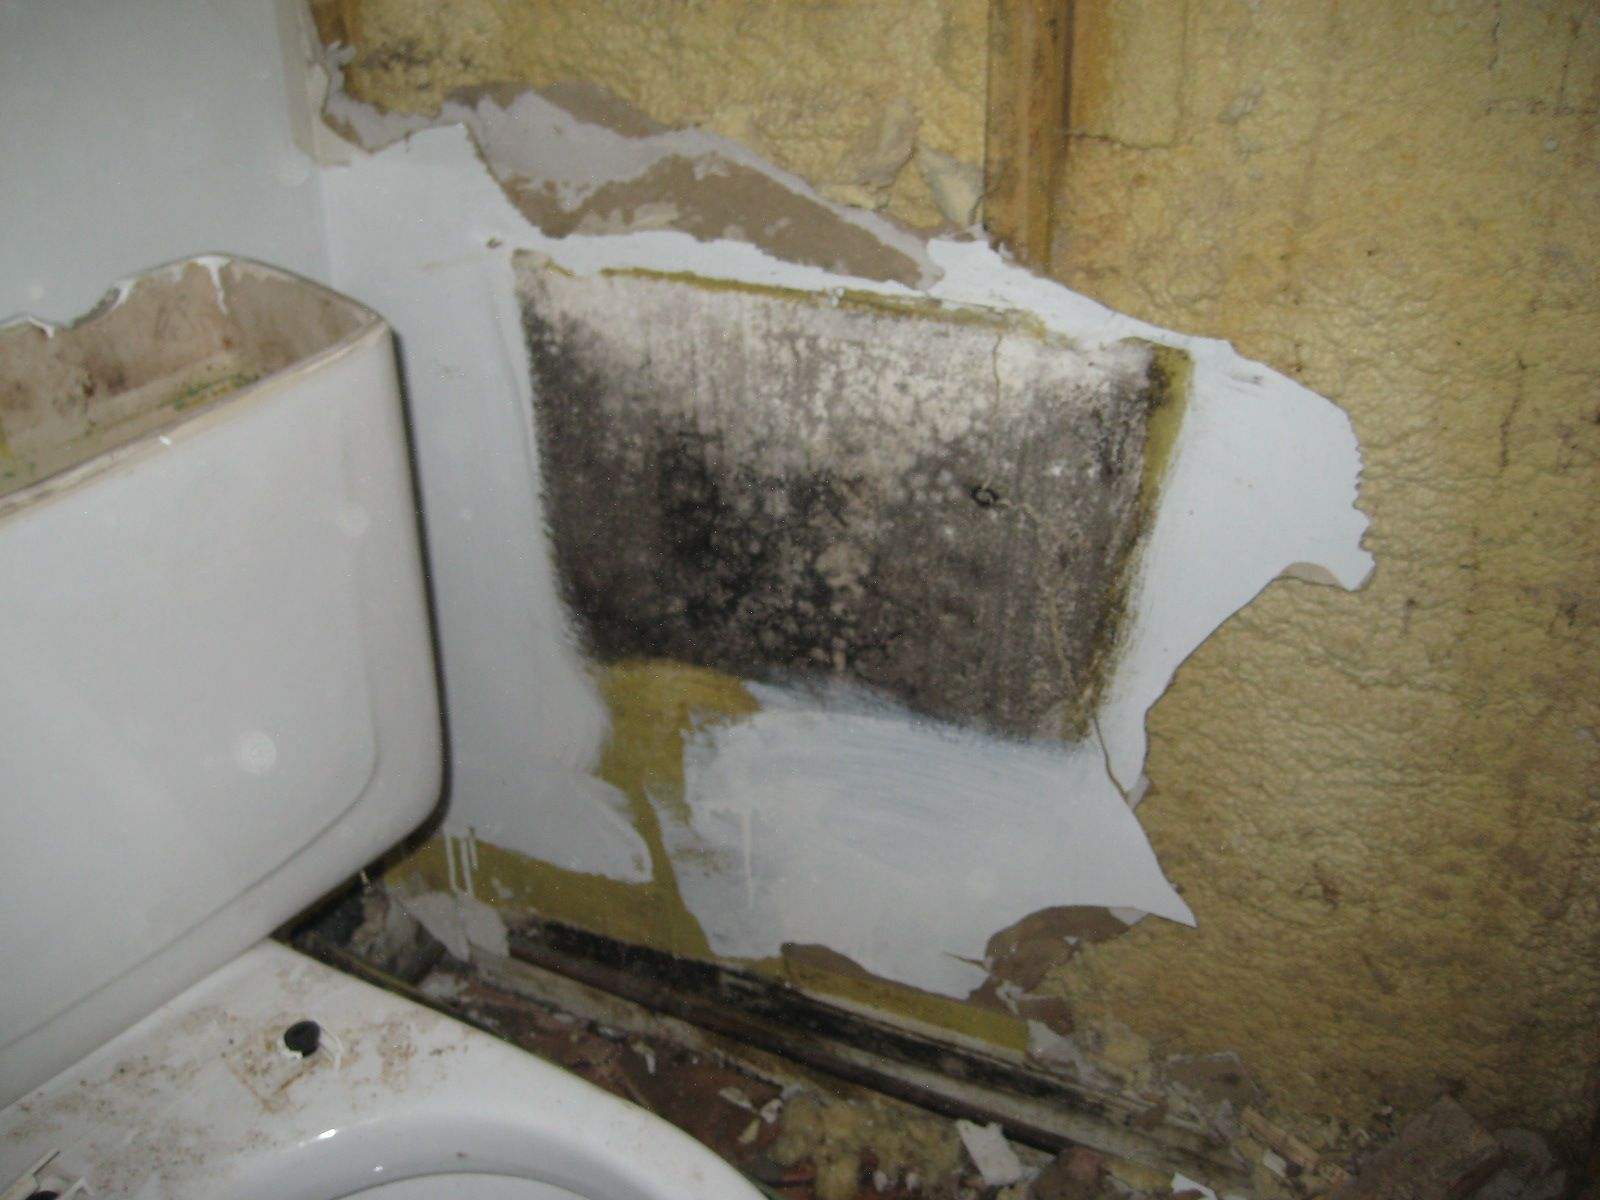 Black Mold Behind The Bathroom Wall. Just Because You Donu0027t See Mold,